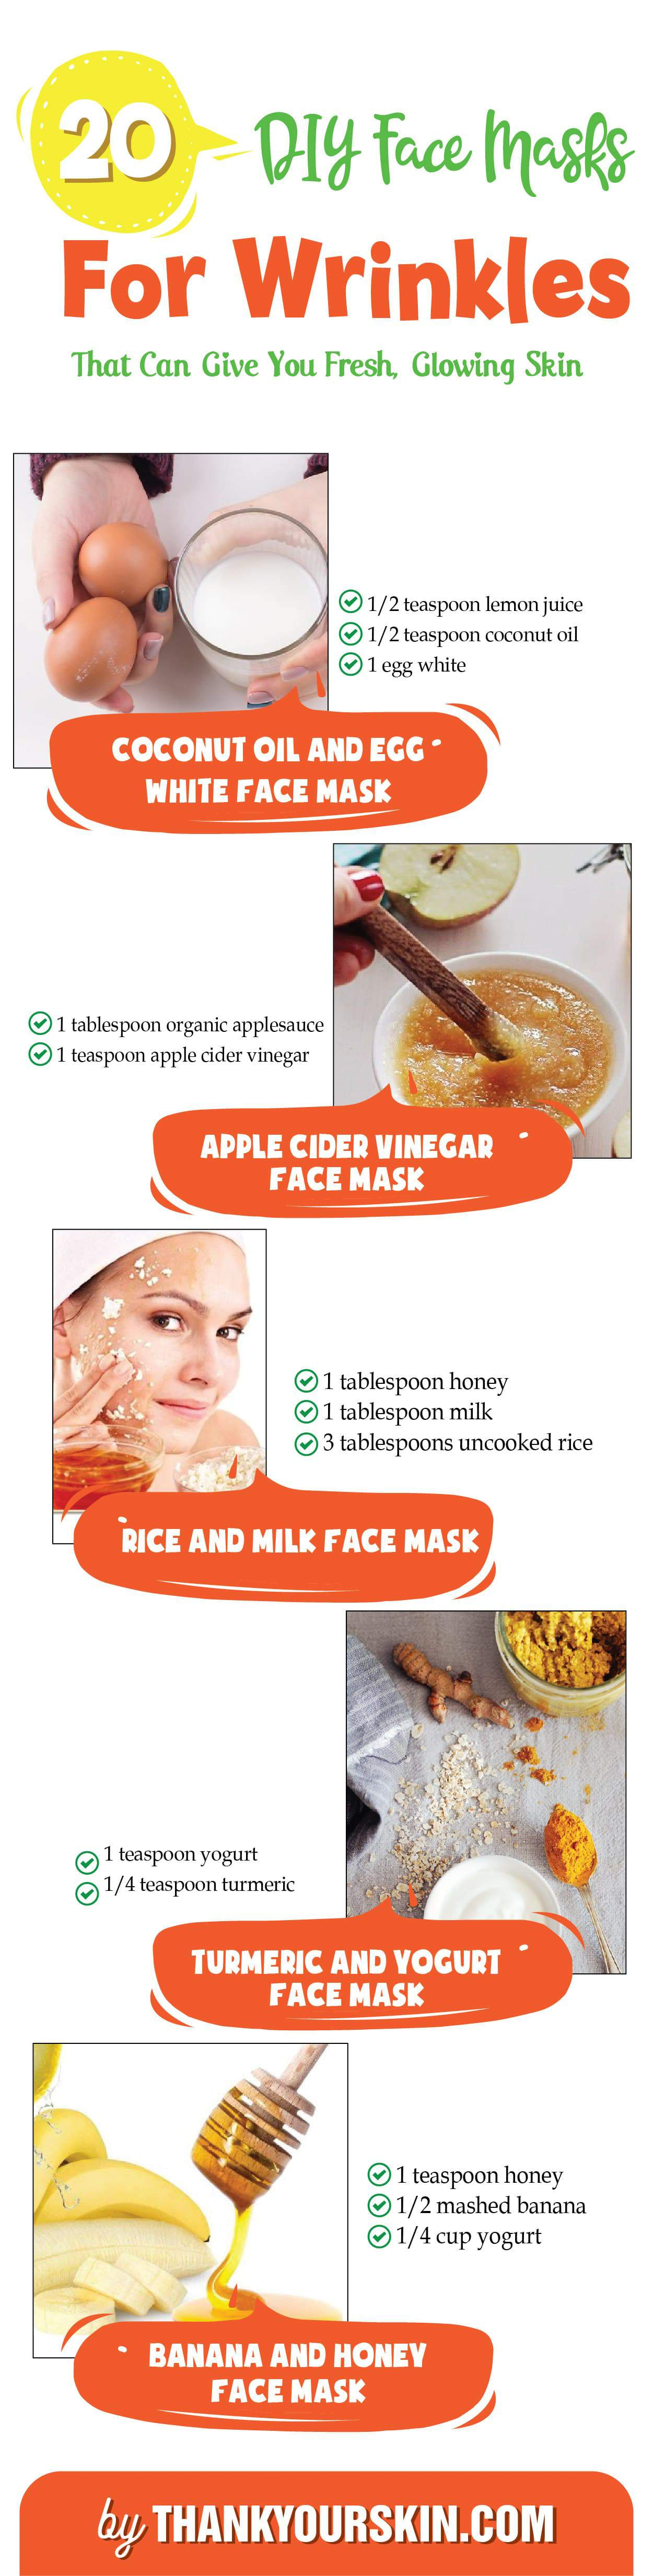 DIY face mask for Wrinkles